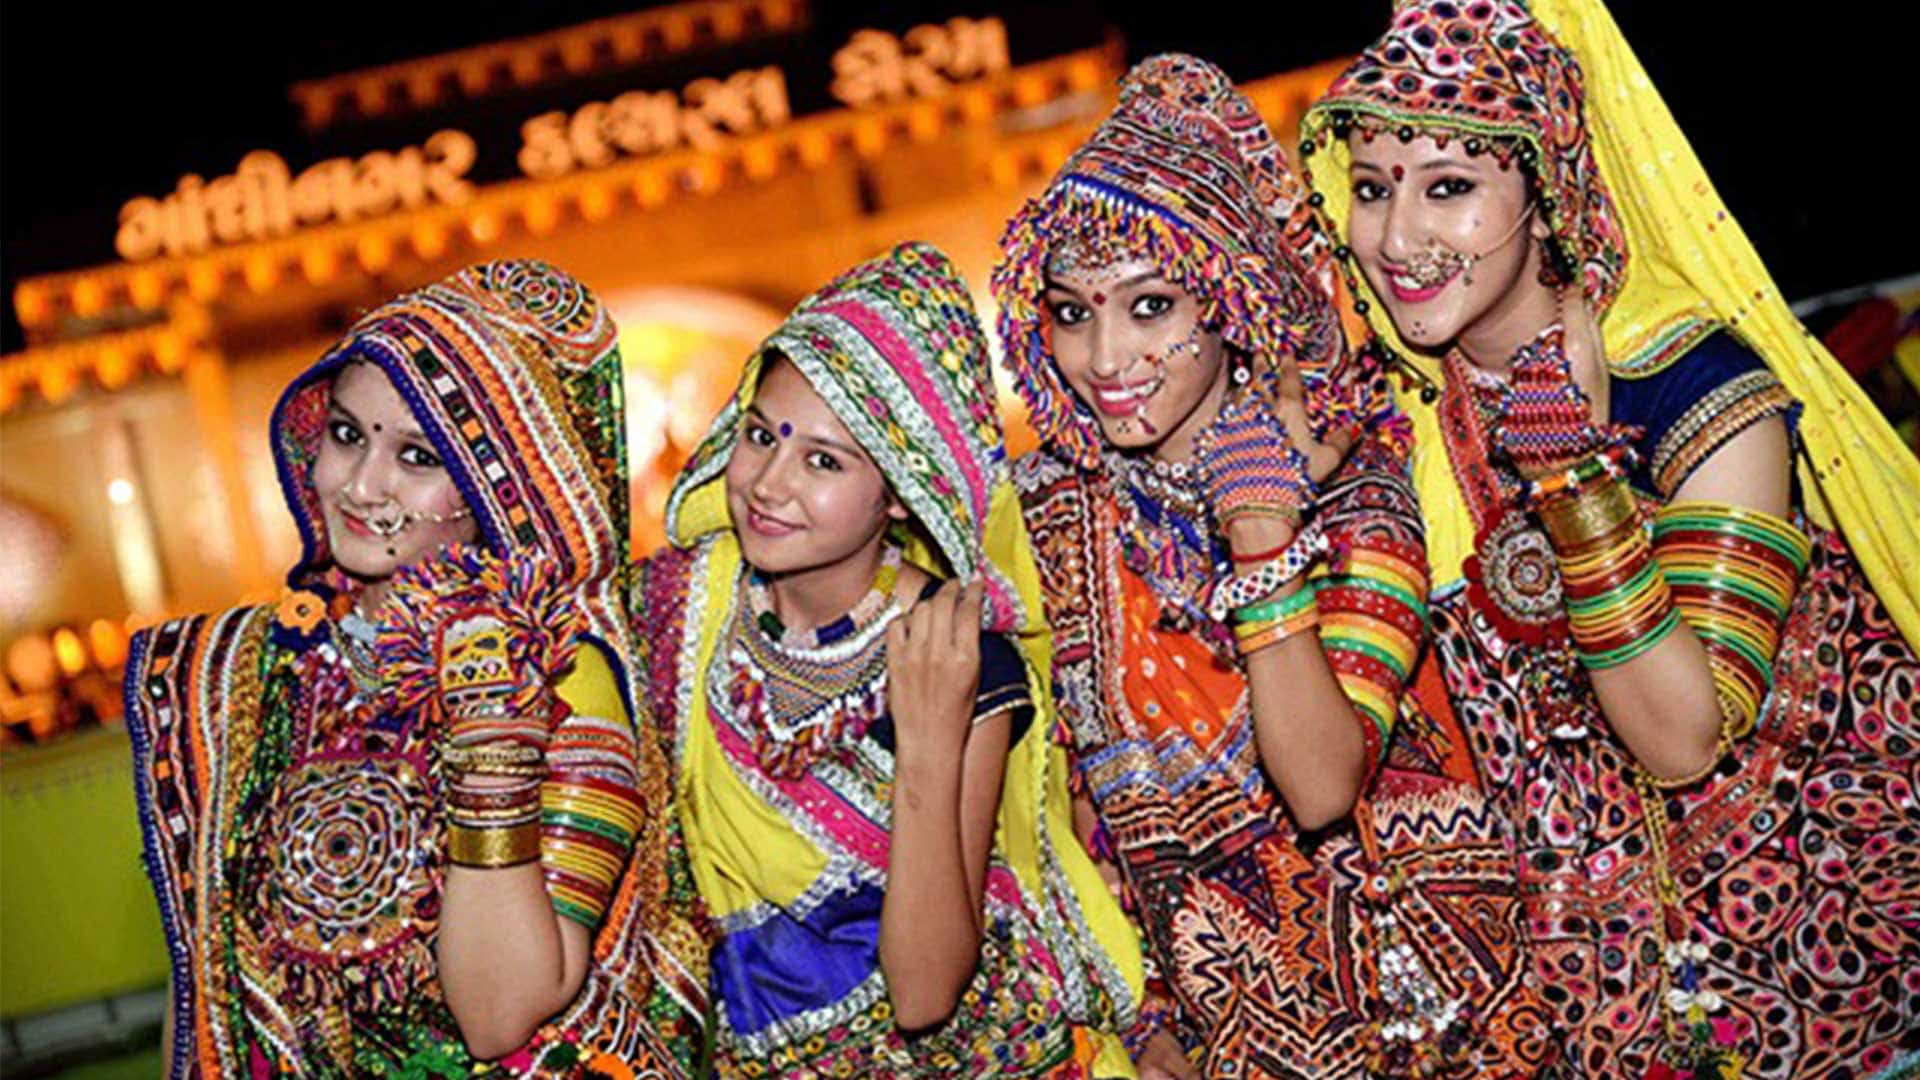 gujarati girls wallpaper